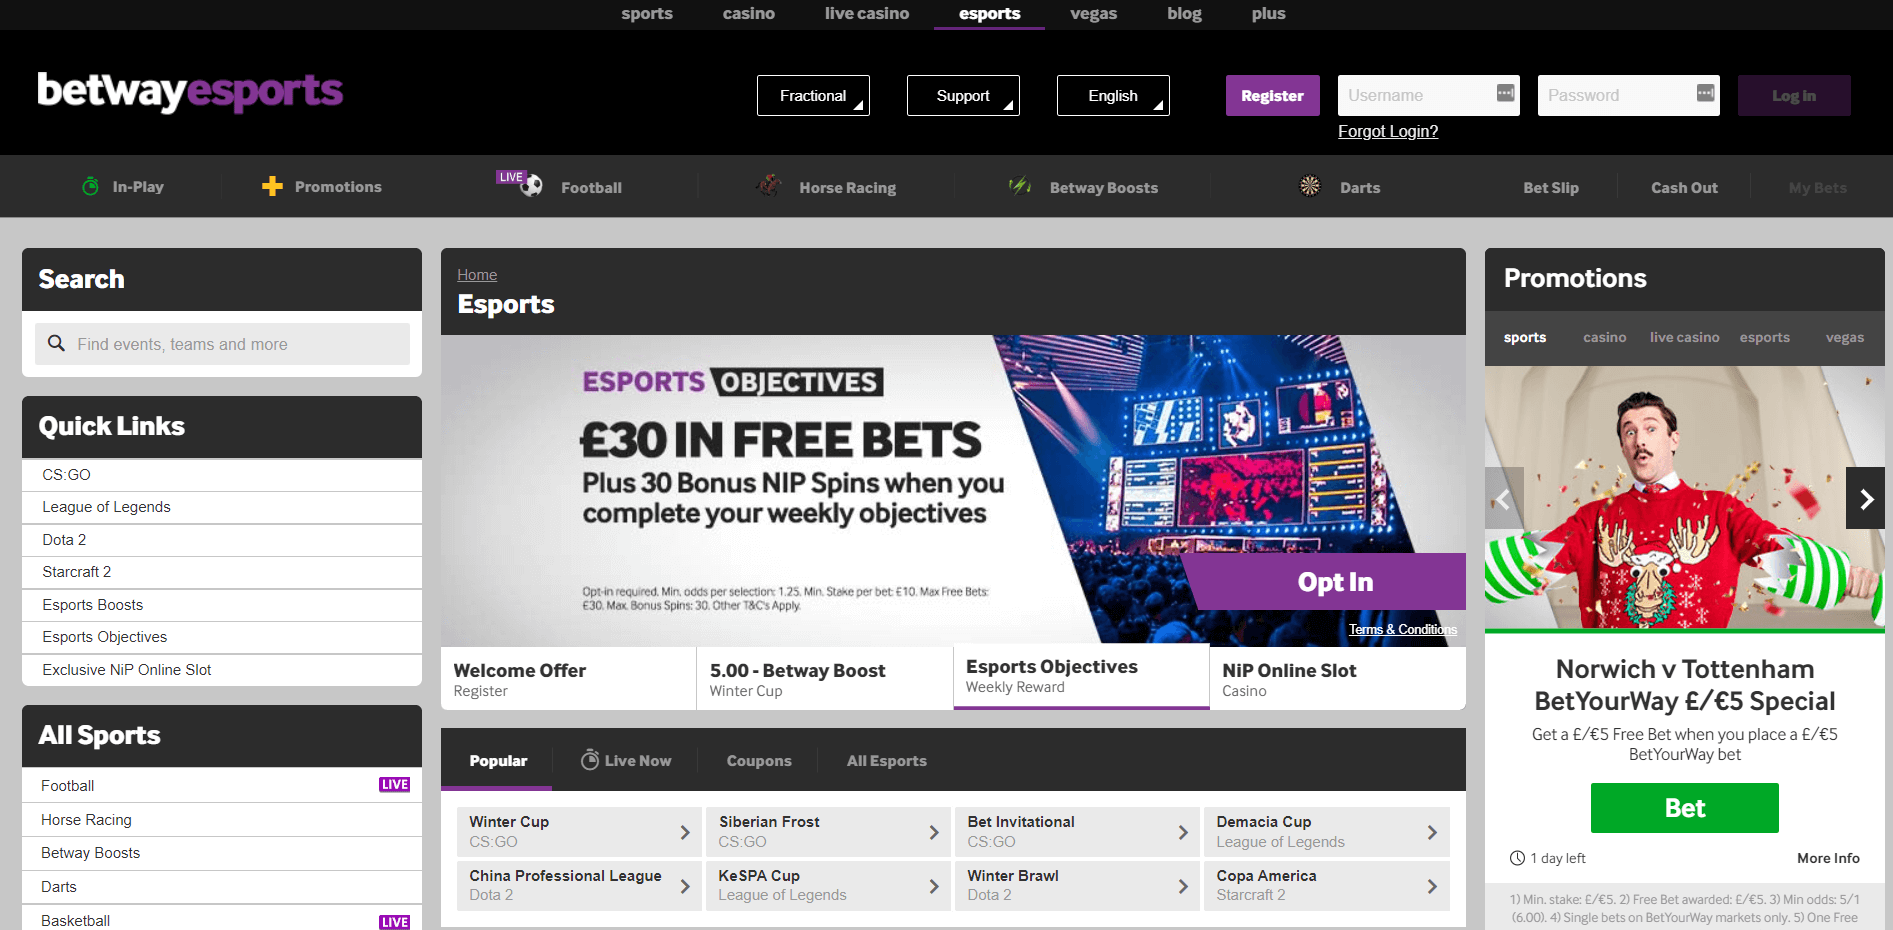 betway esports homepage